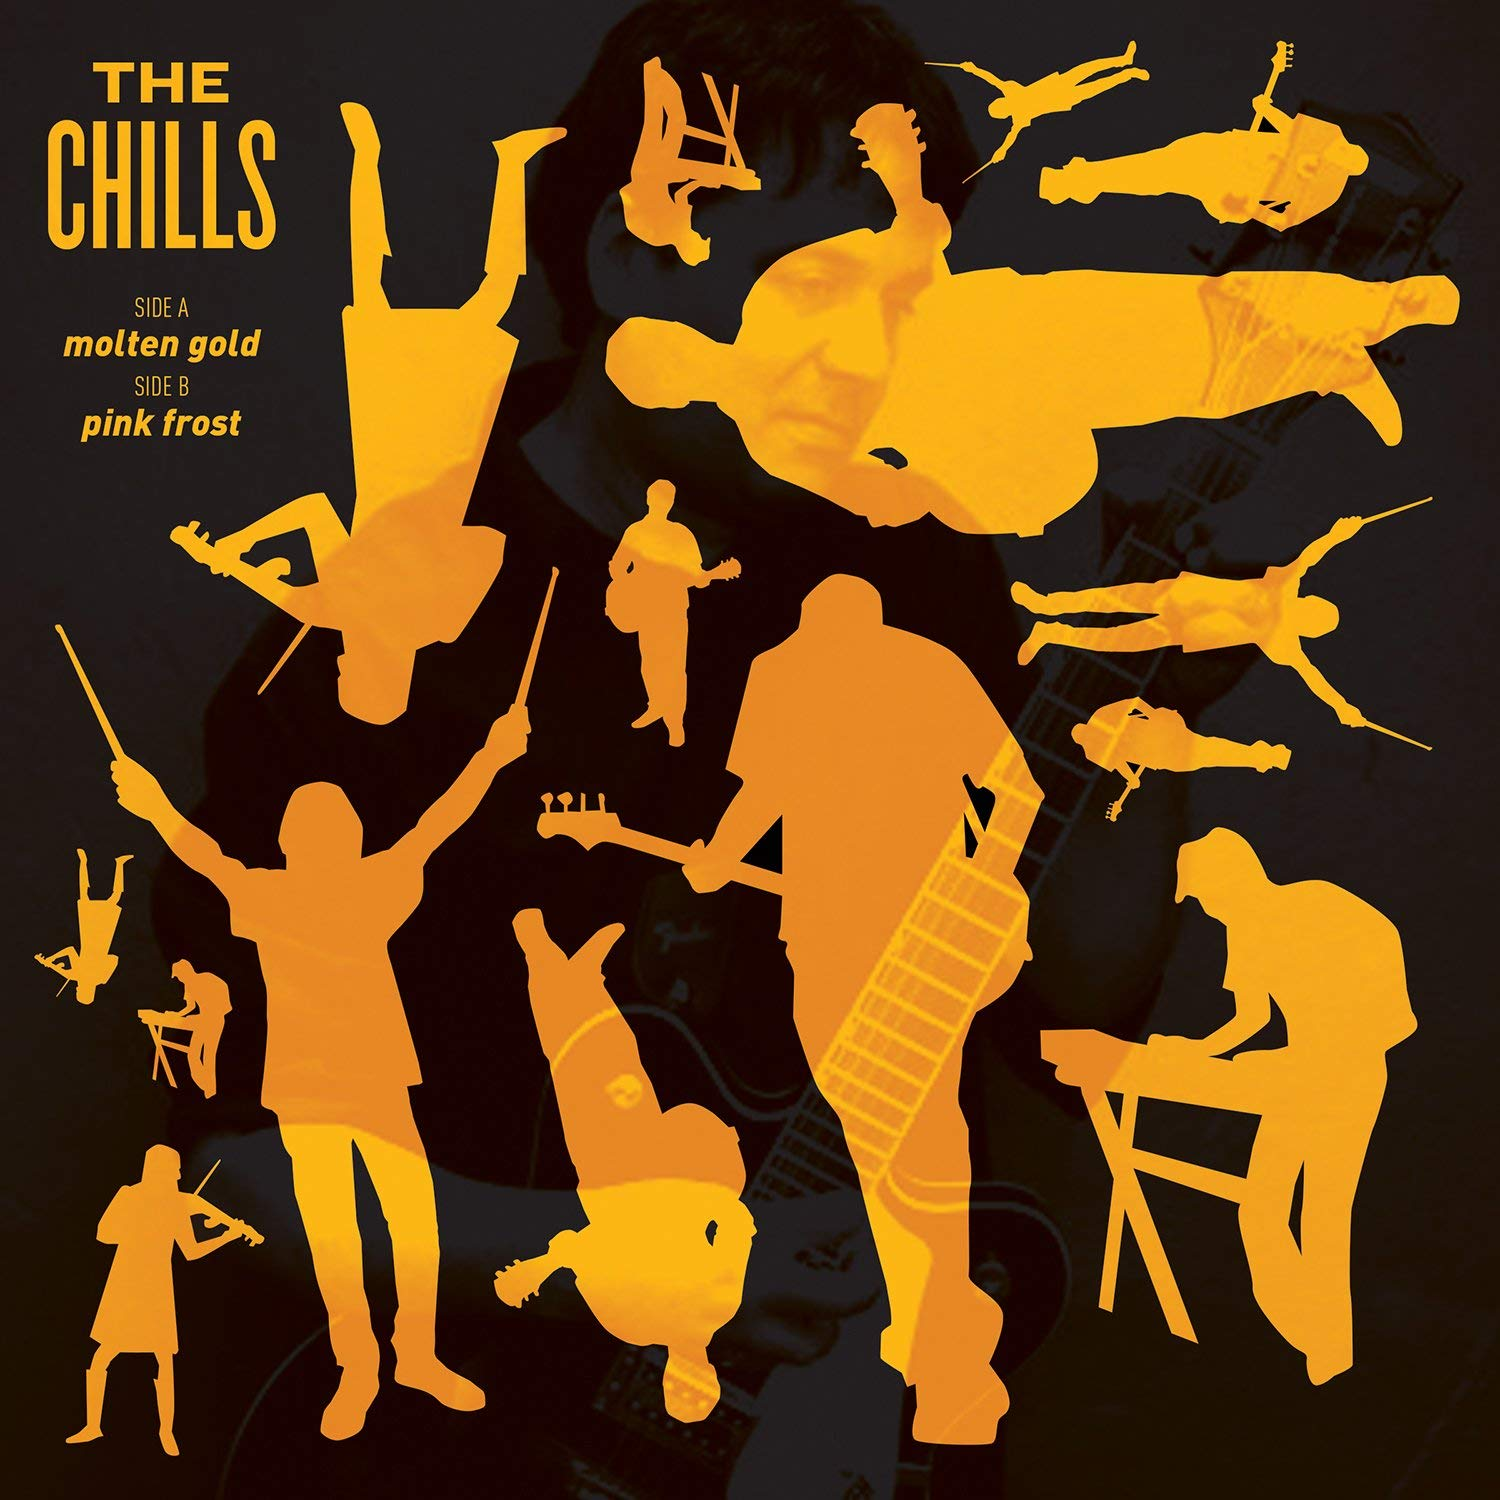 The Chills - Molten Gold / Pink Frost [Vinyl Single]